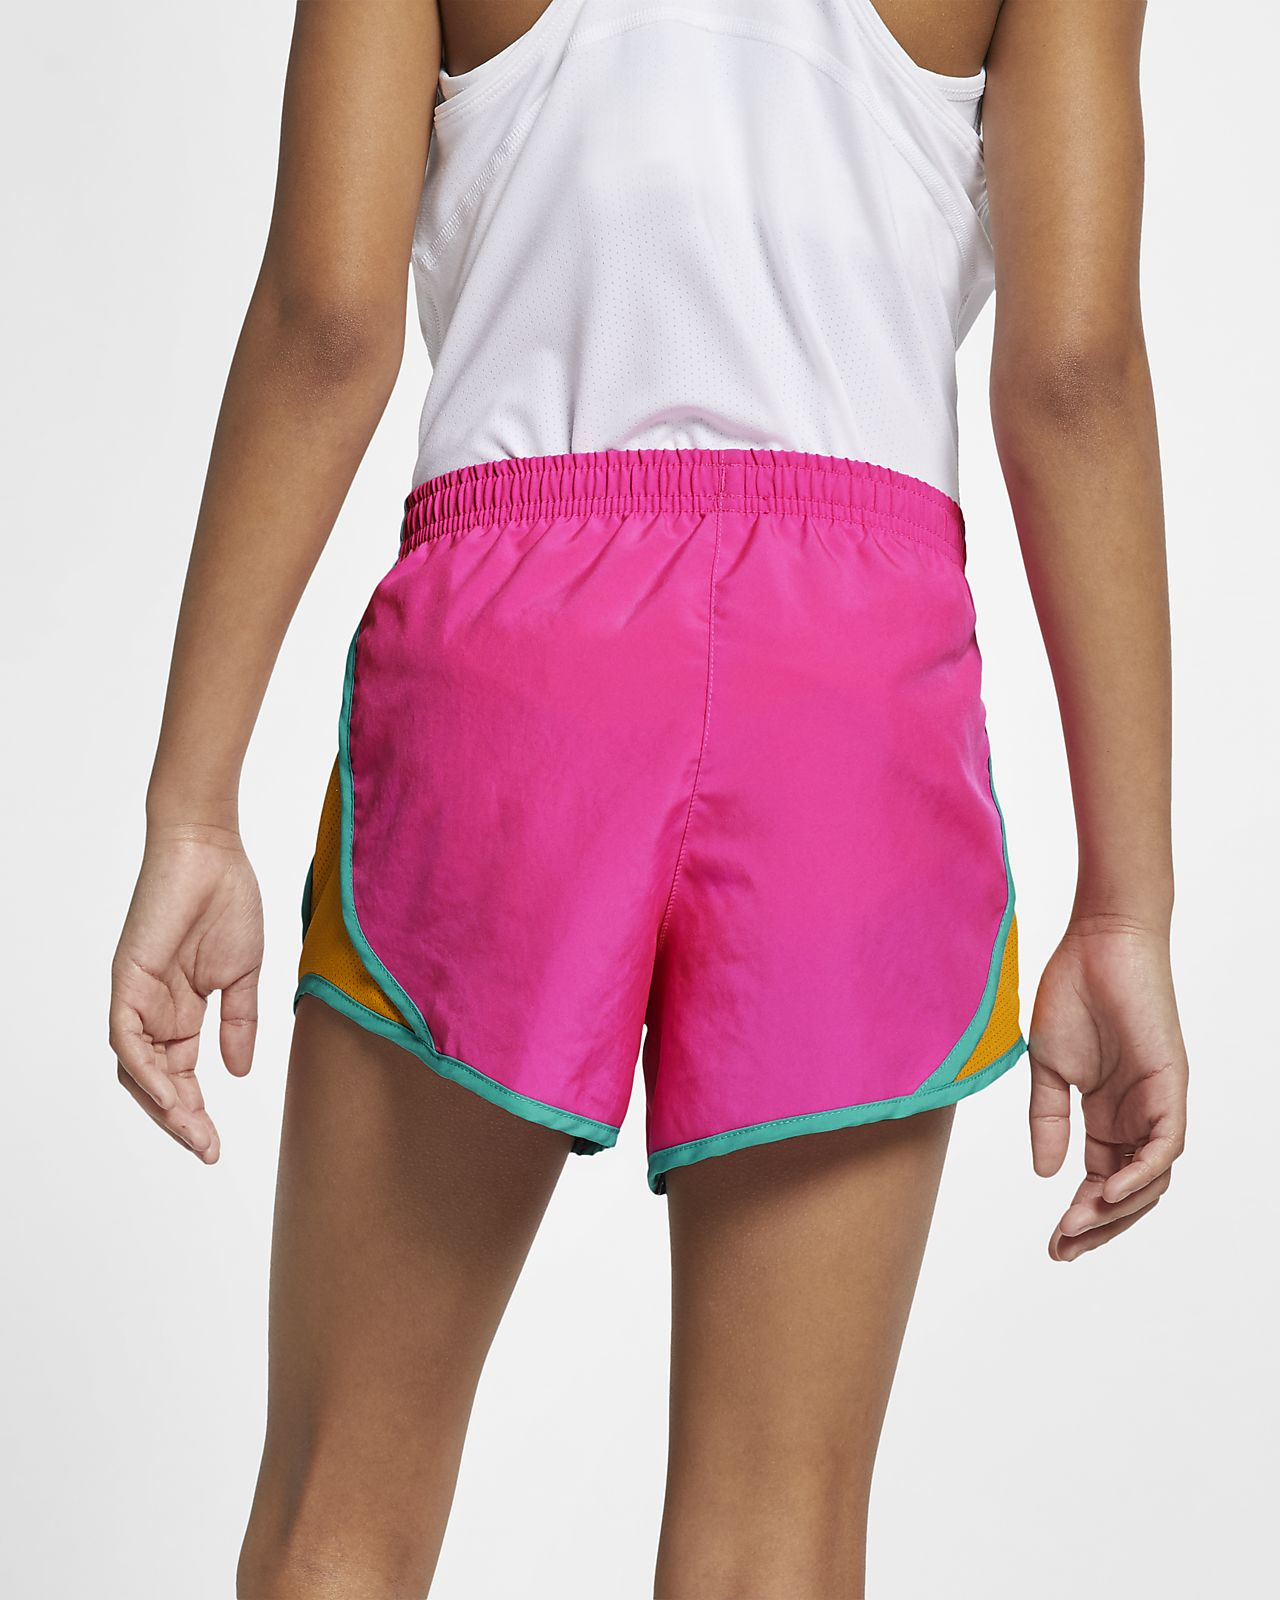 25b2e8917385 Nike Dri-FIT Tempo Big Kids  (Girls ) Running Shorts. Nike.com